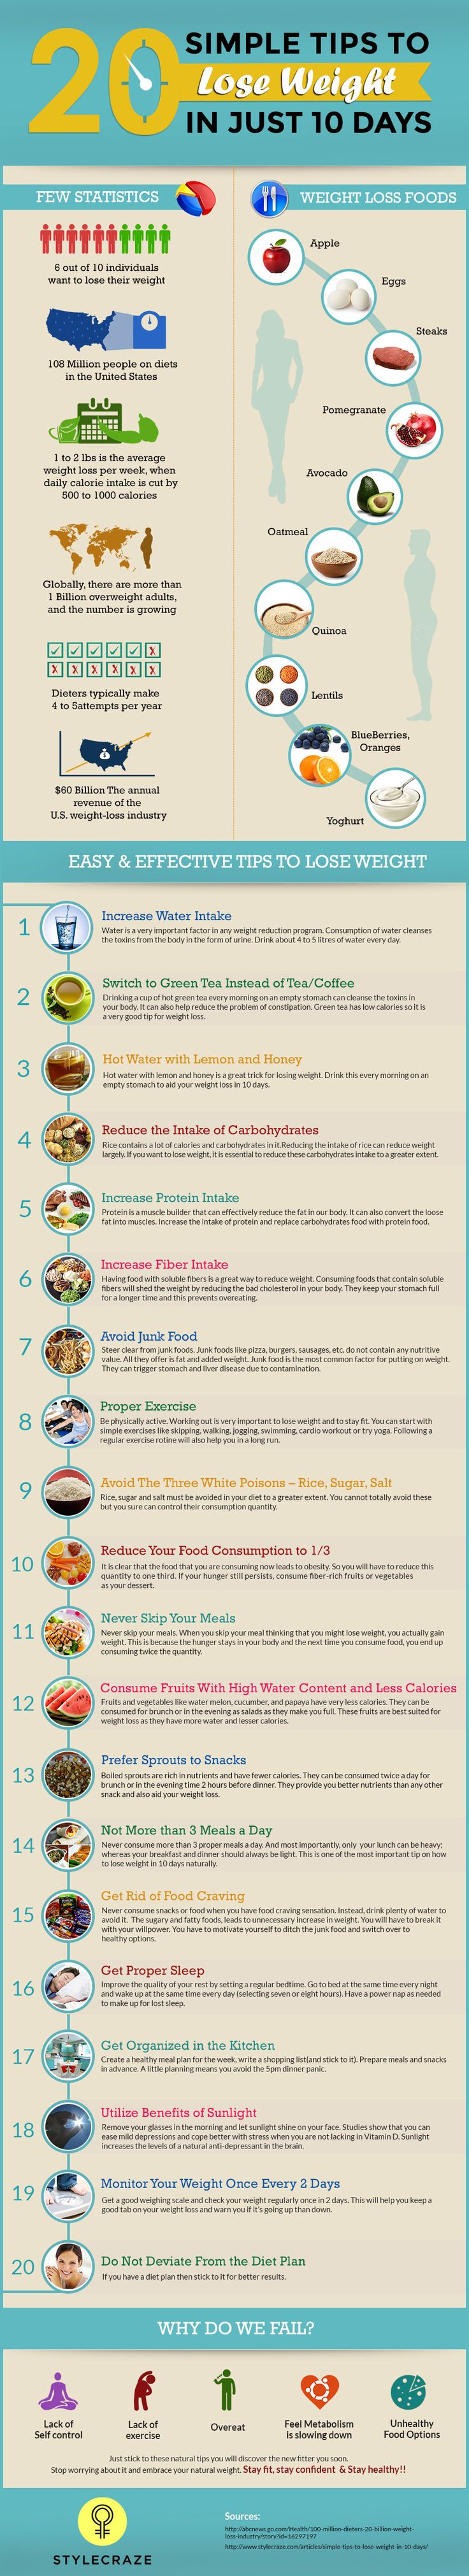 25 Simple Tips To Lose Weight In Just 10 Days --great tips!!!